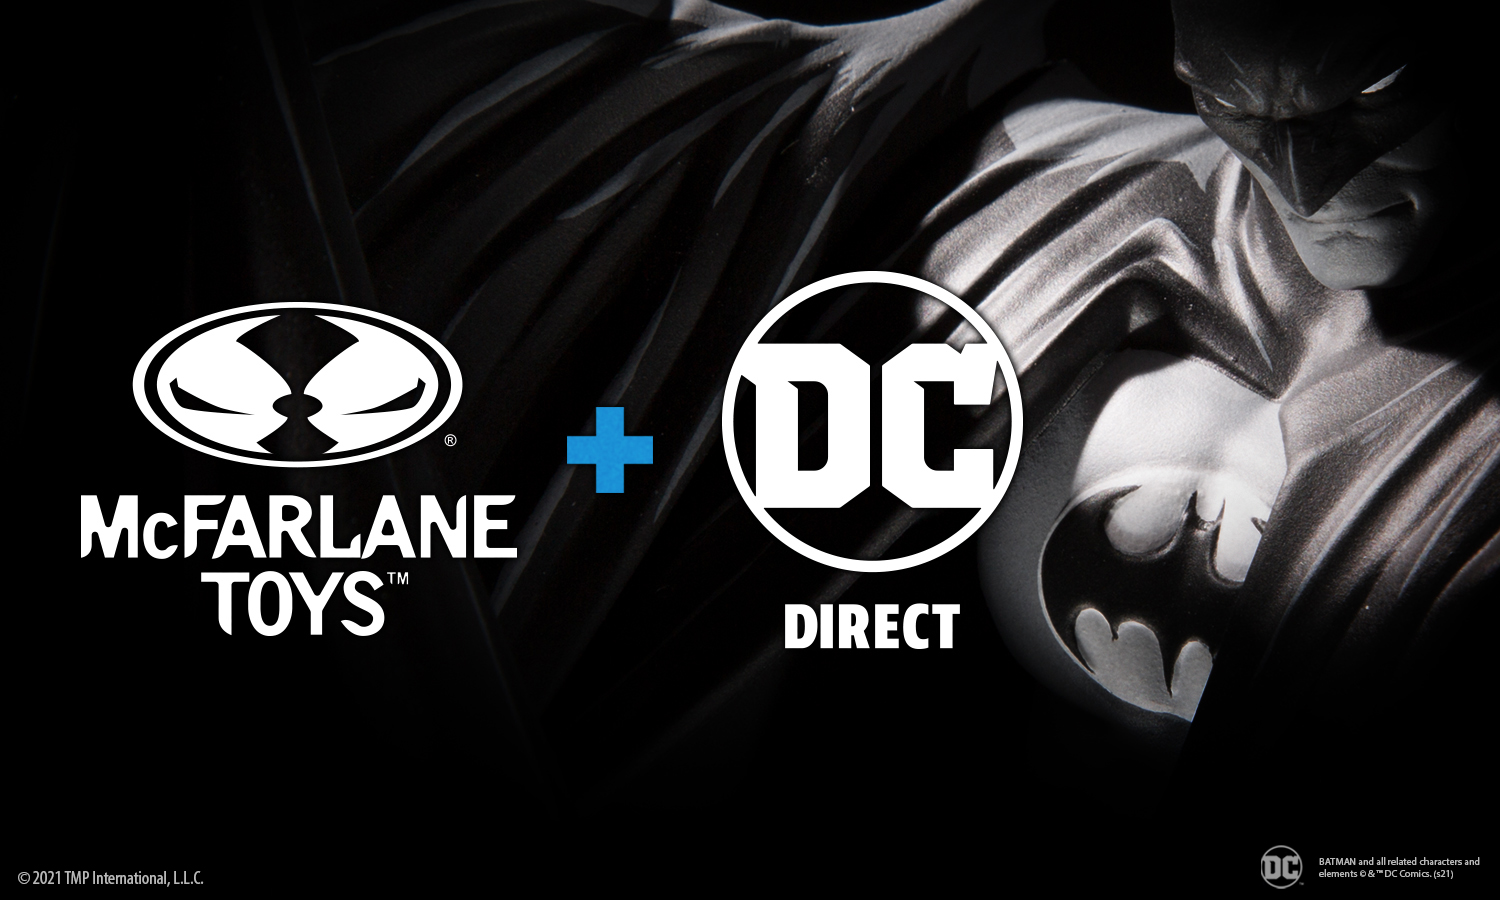 McFarlane Toys expanding to DC Comics statues and taking over DC Direct